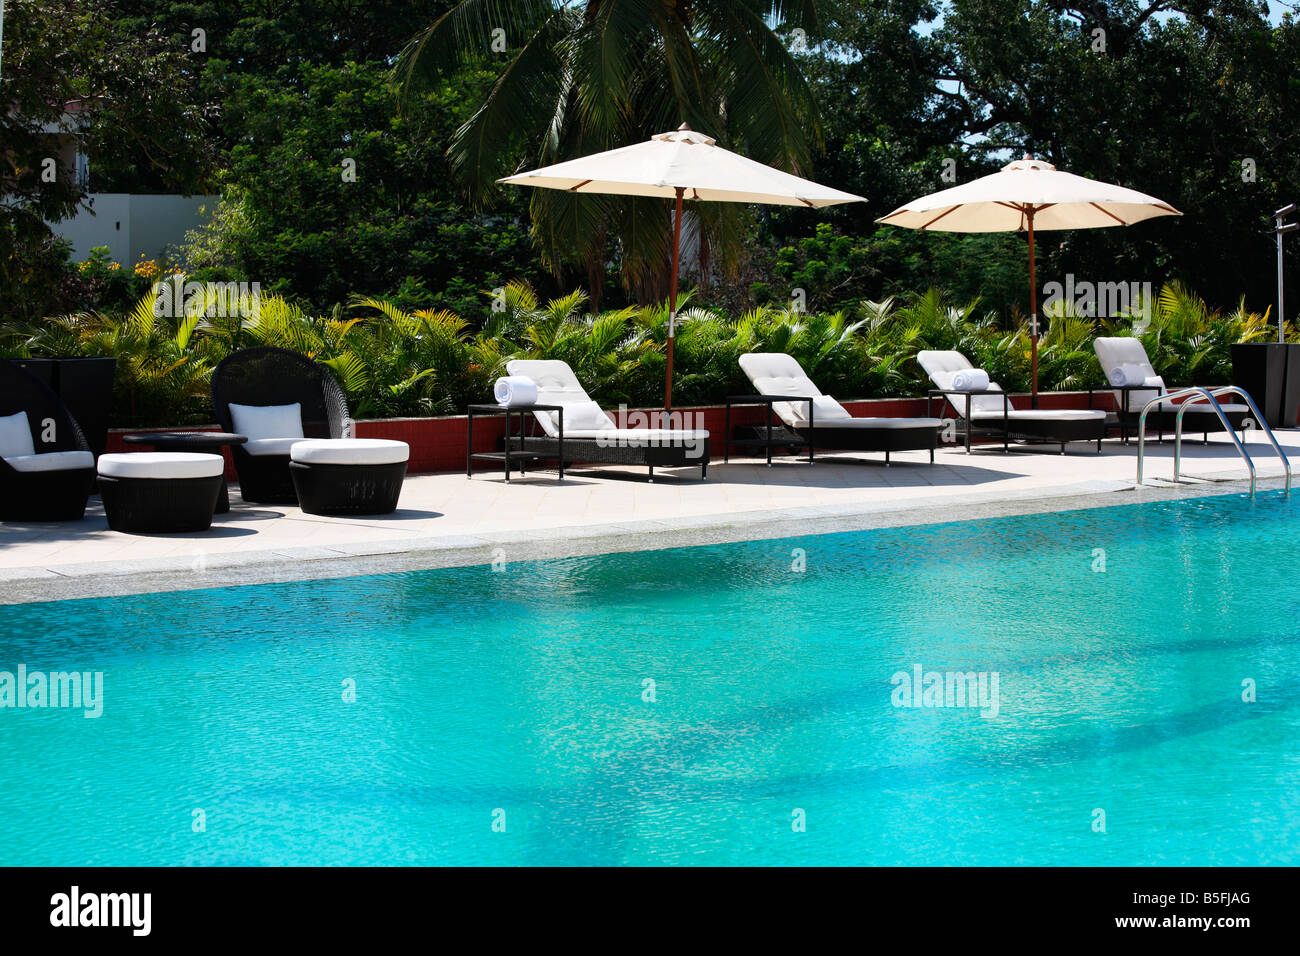 Swimming Pool With Deck Chairs In A Five Star Hotel In Kerala India Stock Photo Royalty Free